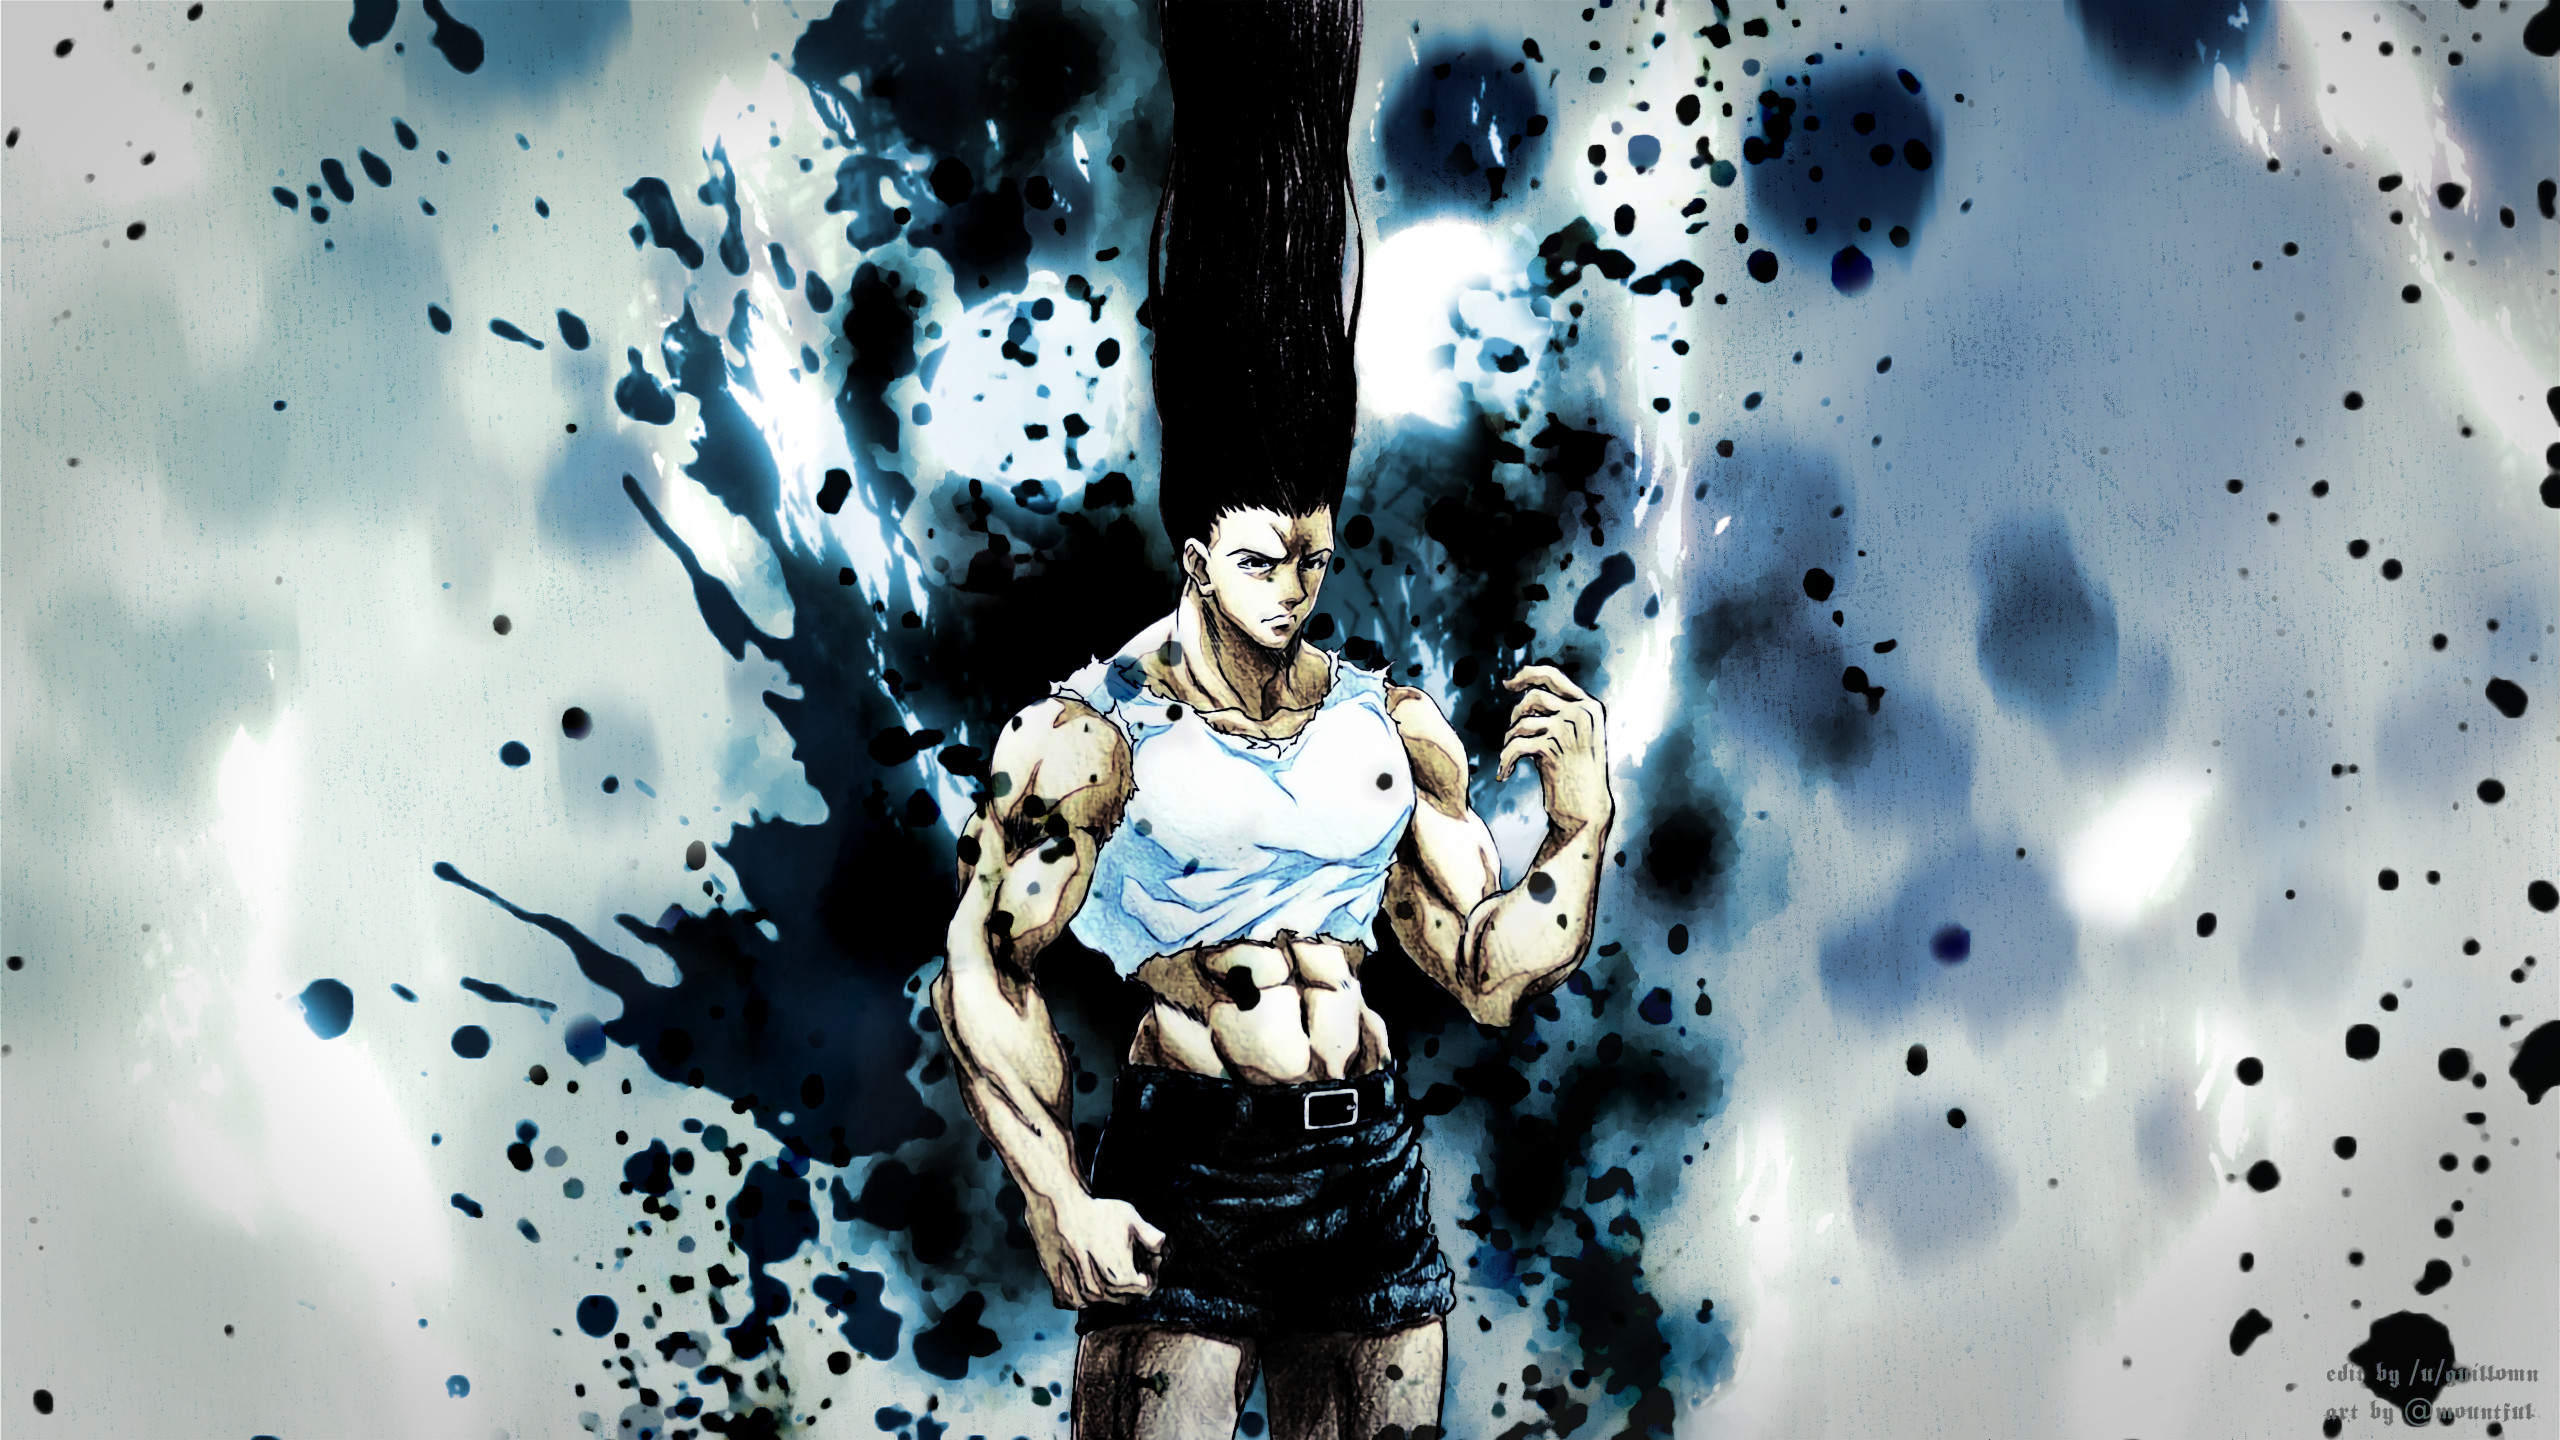 It is recommended to browse the workshop from wallpaper engine to find something you like instead of this. Hunter X Hunter Wallpaper Gon - 2560x1440 - Download HD ...